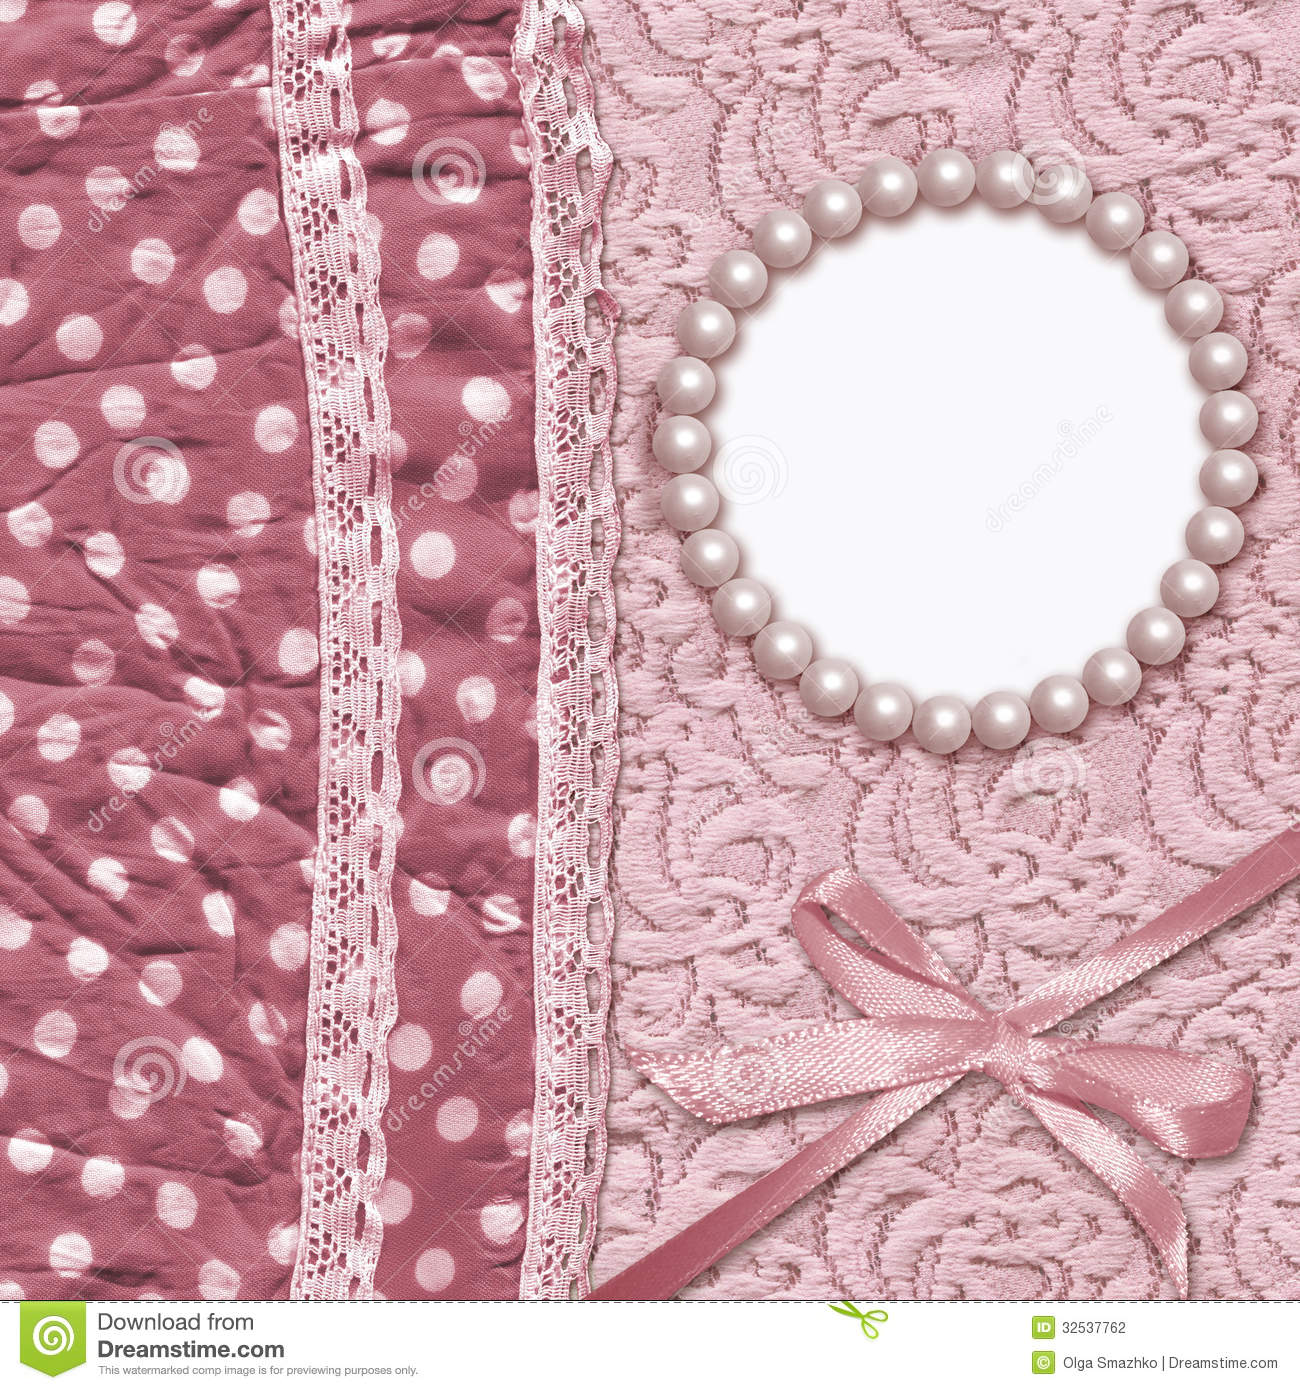 lace pearls pink wallpaper - photo #38